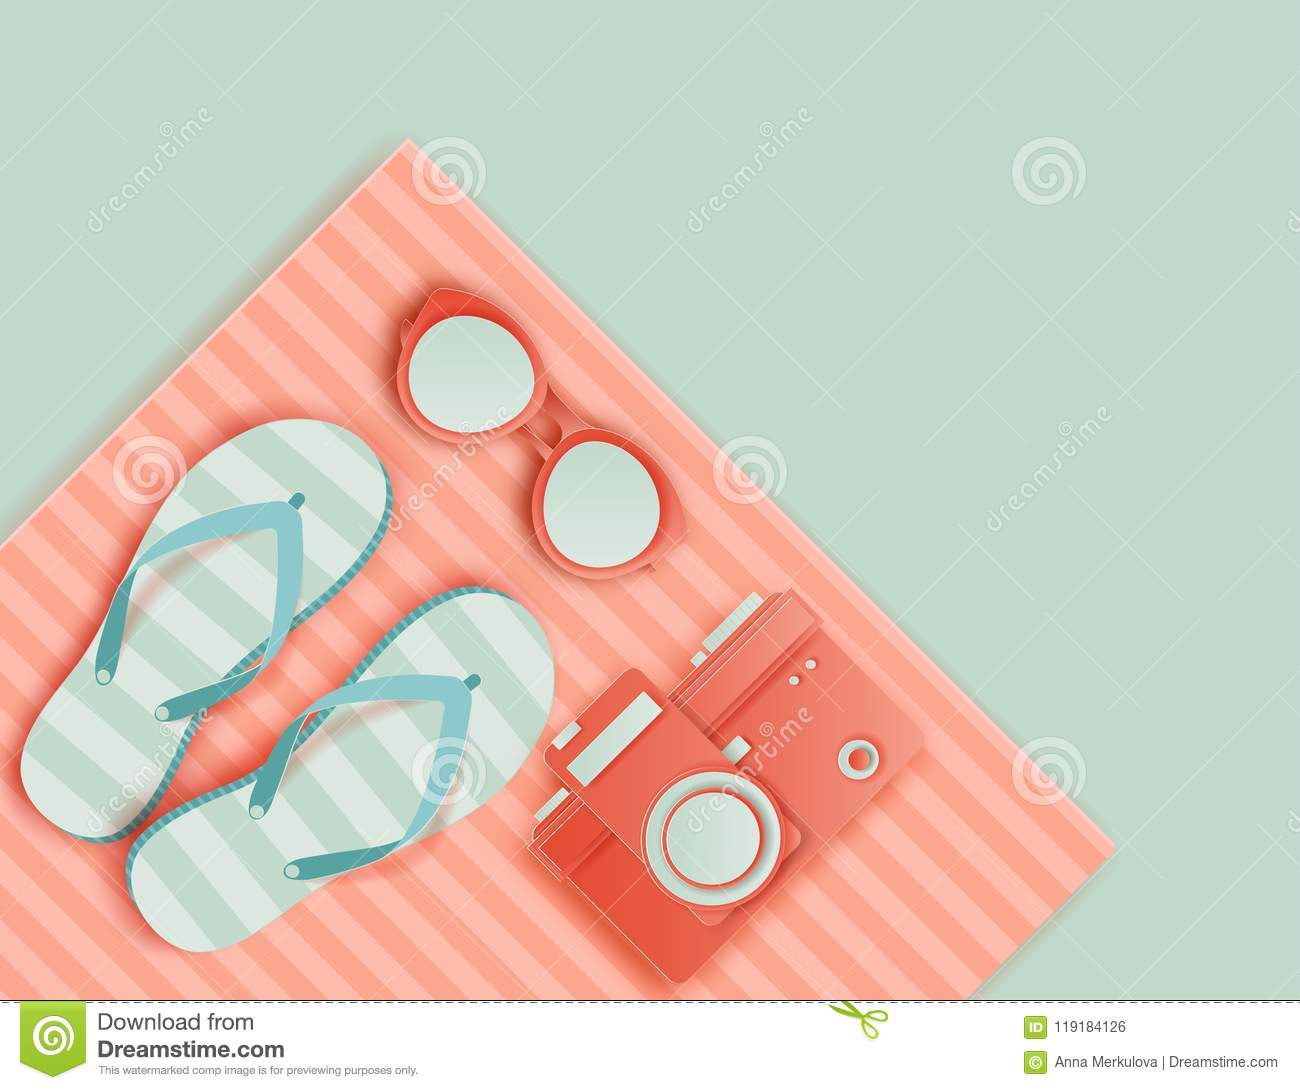 f45dac1e7 Summer background in pastel colors. Paper cut retro photo camera,  sunglasses, striped beach towel, slippers. Summer vacation concept